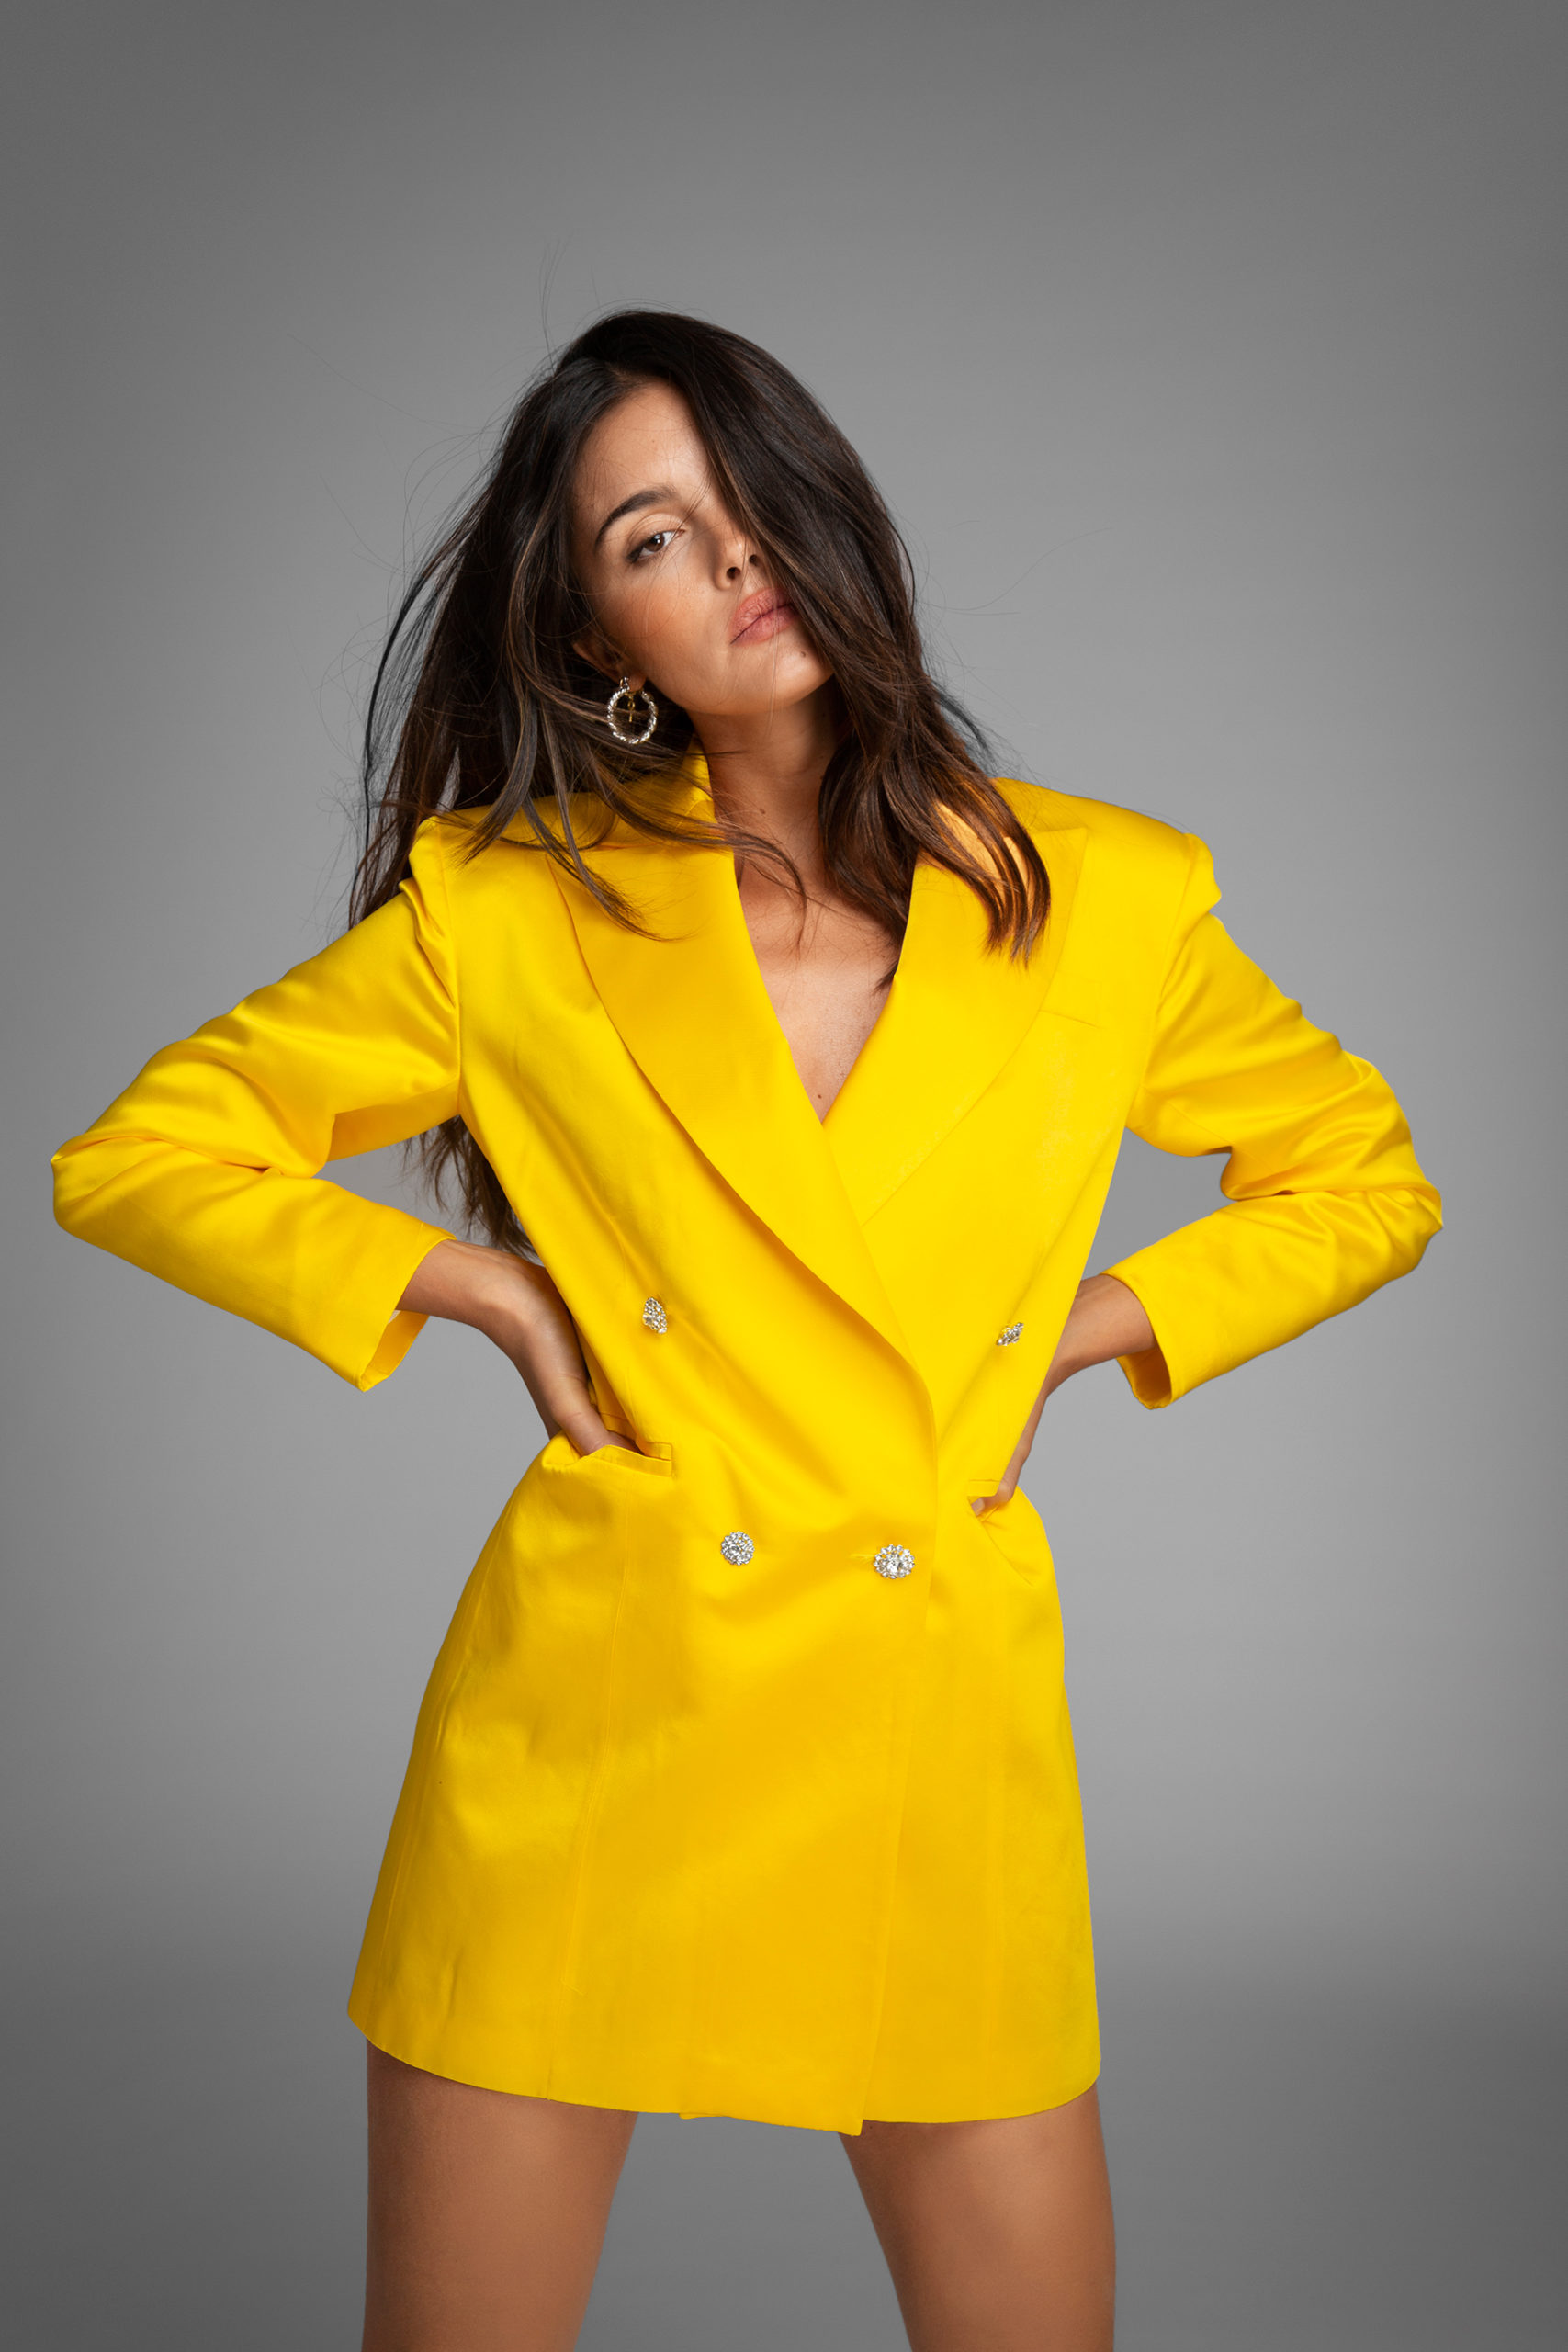 womance-tuxedo-smokin-chaqueta-seda-mini-dress-yellow-hq-2